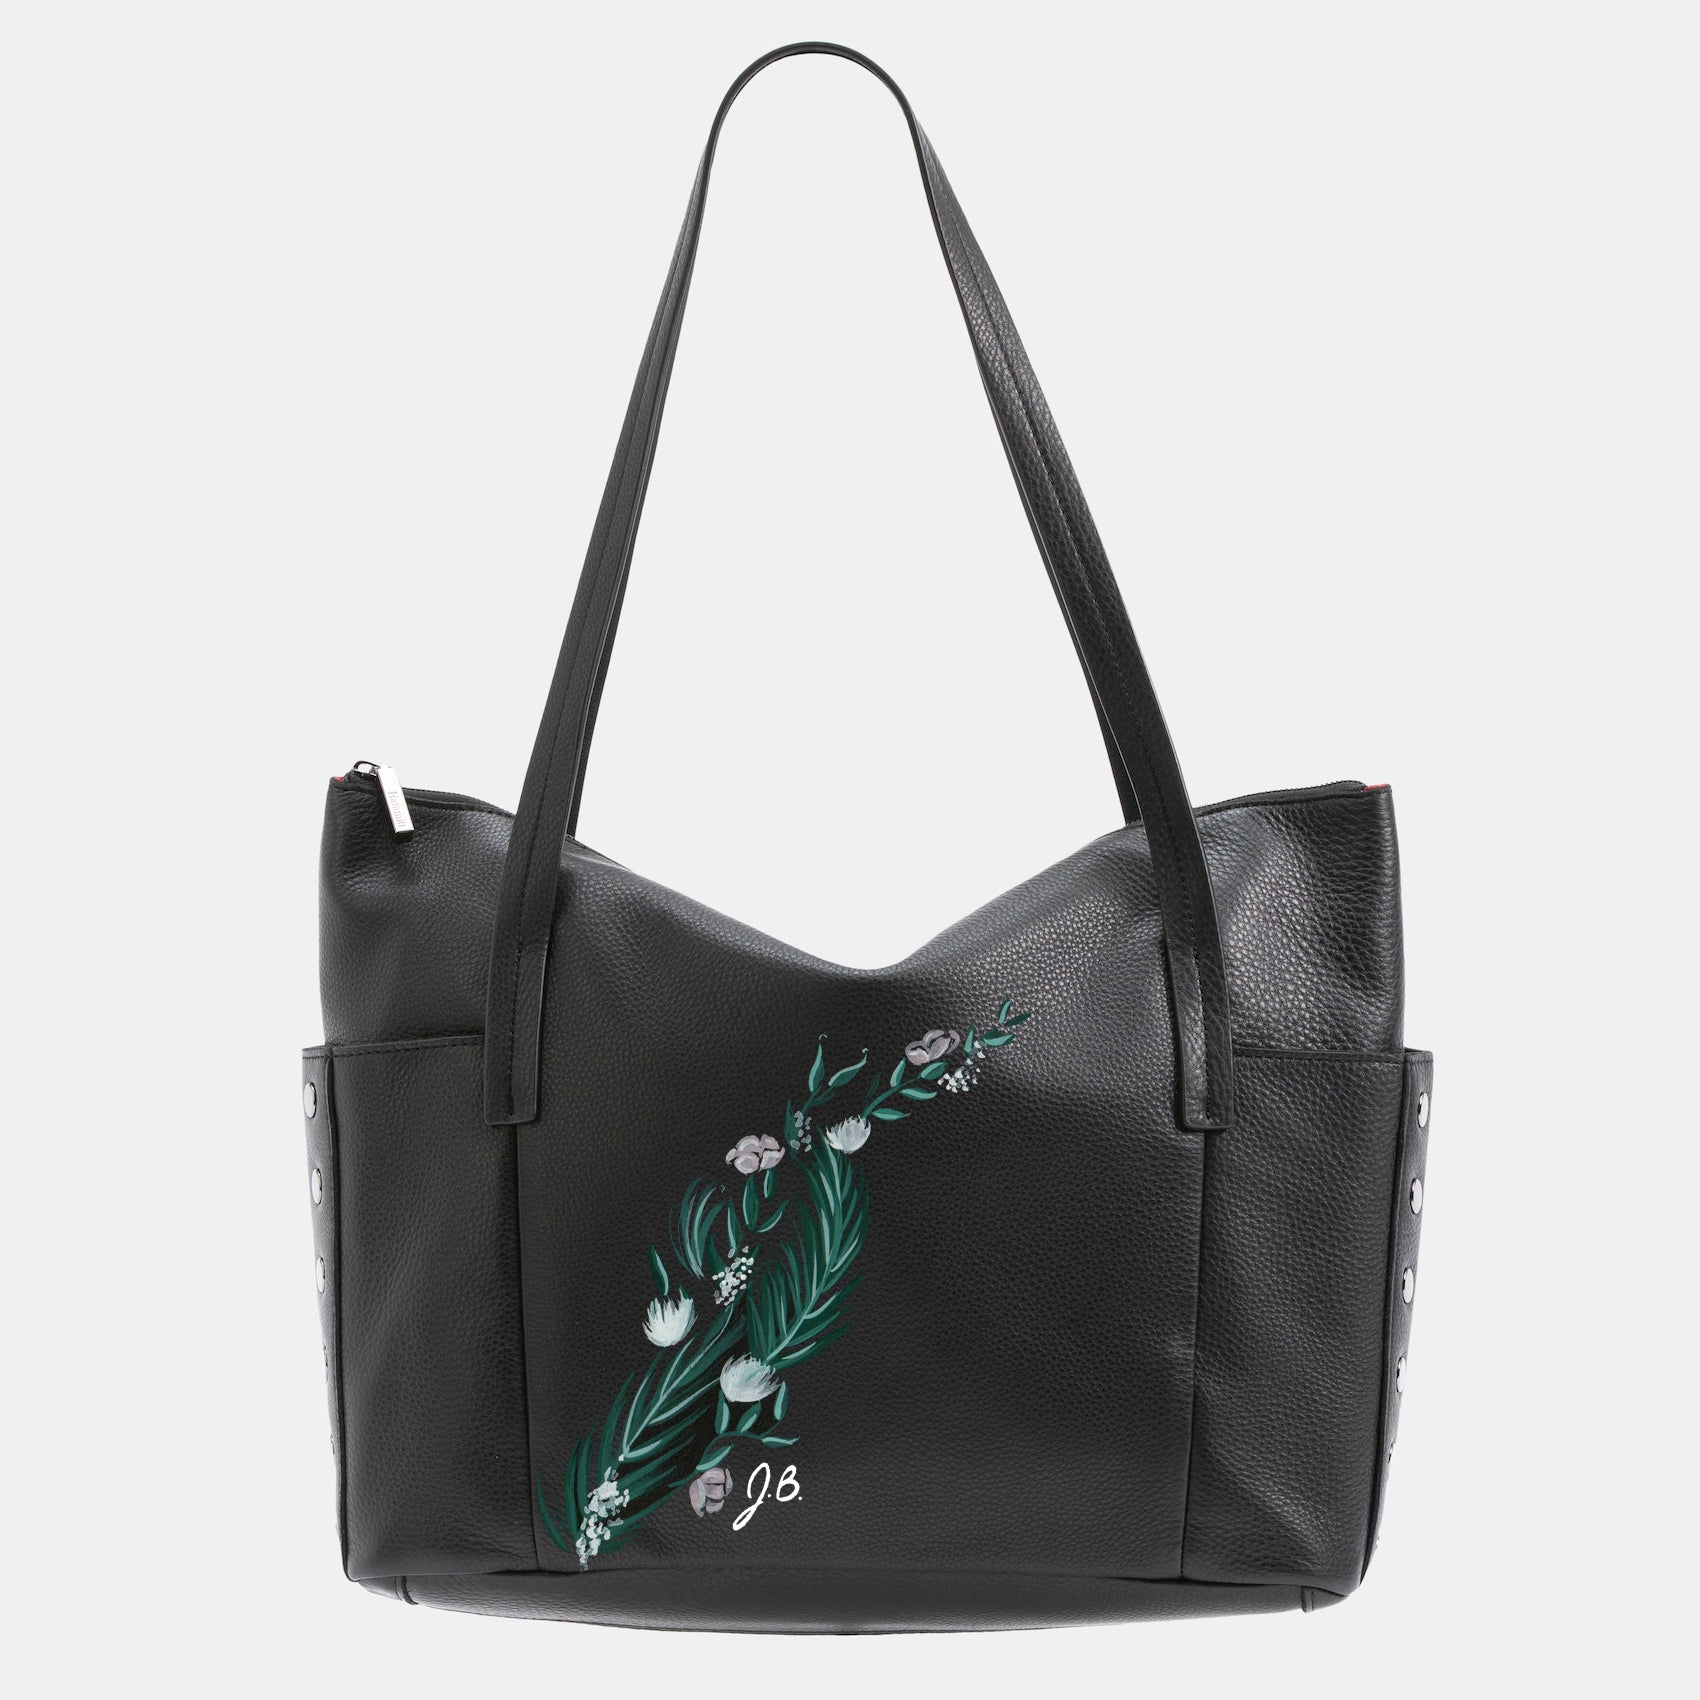 Addie-Lrg-Black-Floral-Front-View